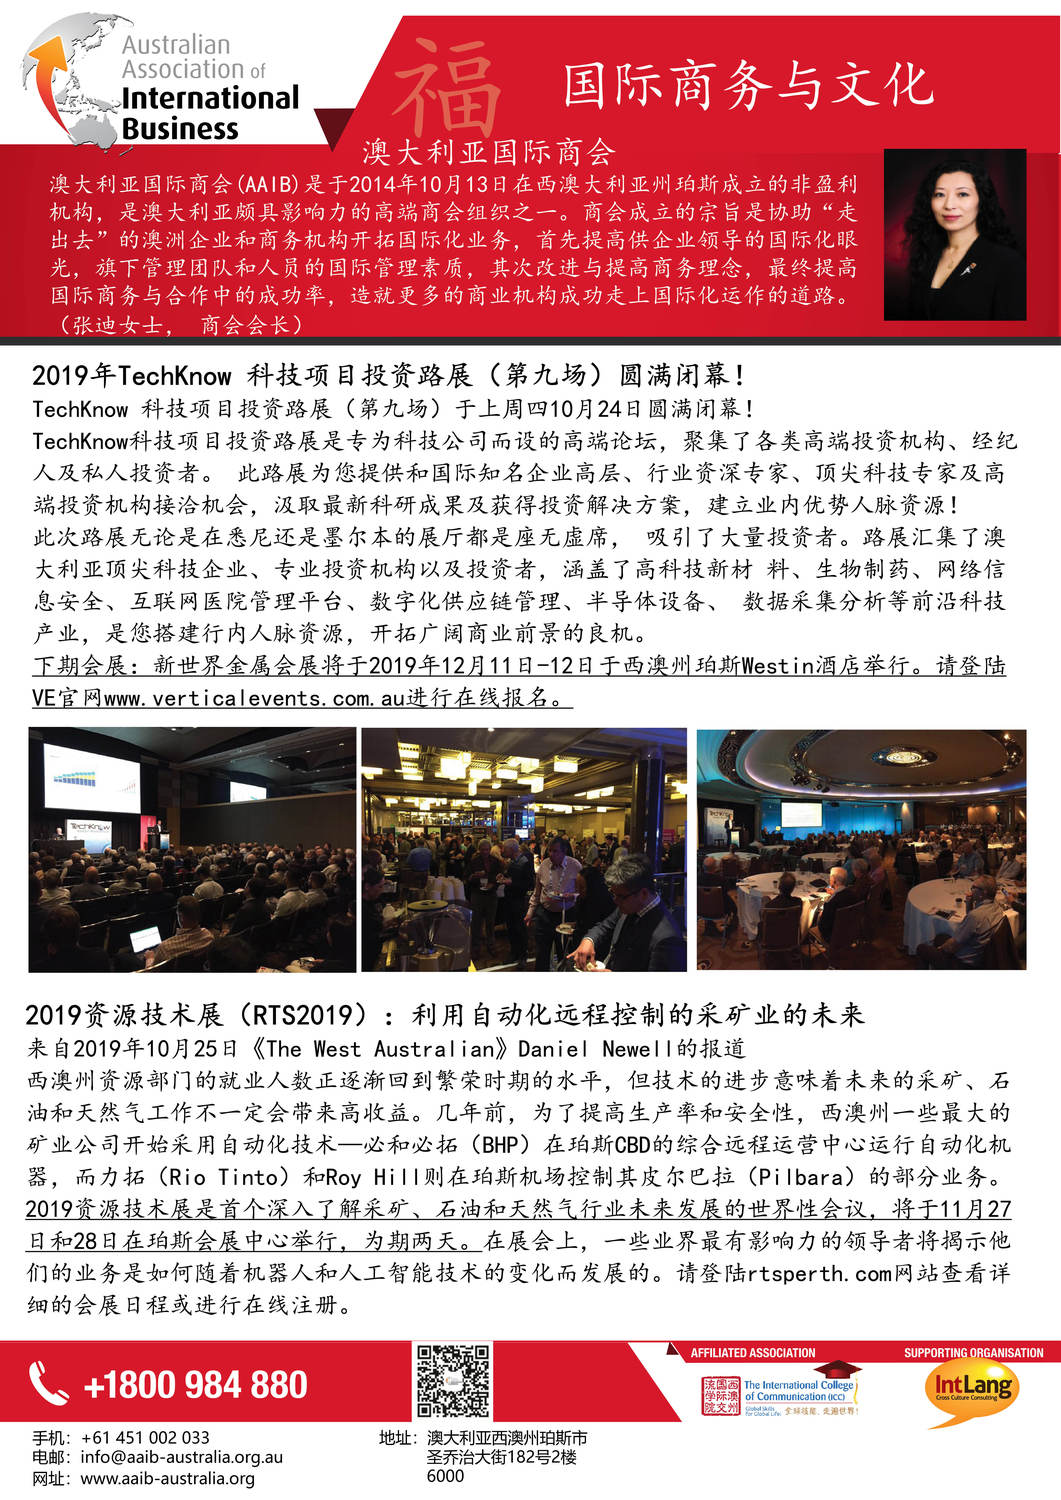 AAIB 20191028 Newsletter.jpg